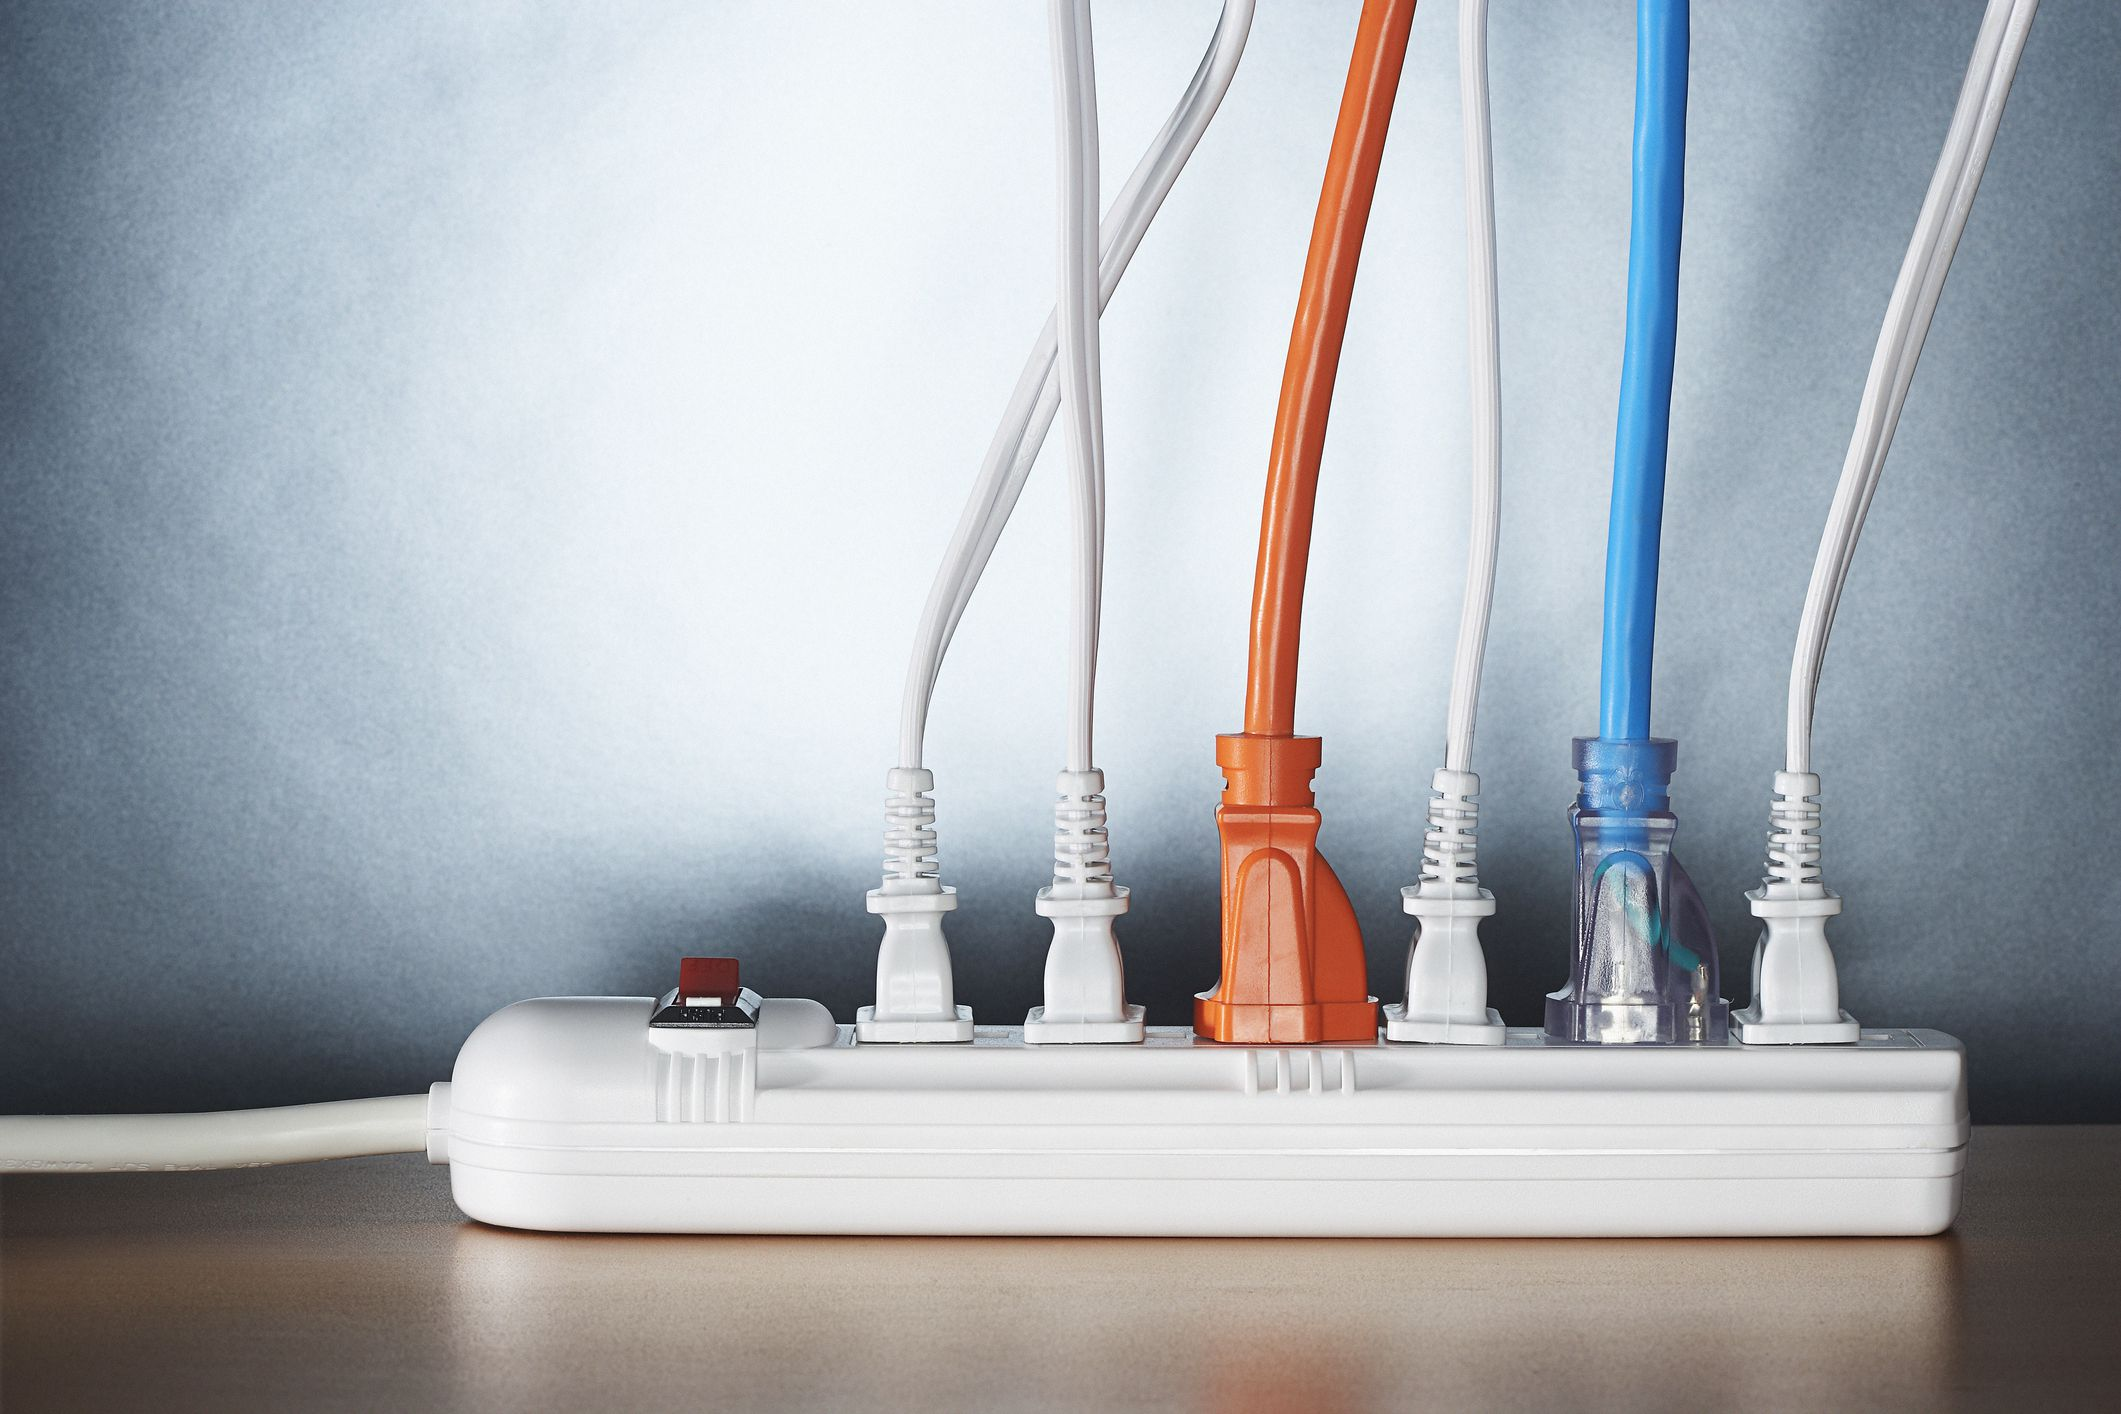 Picking The Right Surge Protector For Your Electronics New Ground Fault Circuit Interrupter Outlet Price Usd 1000 Min